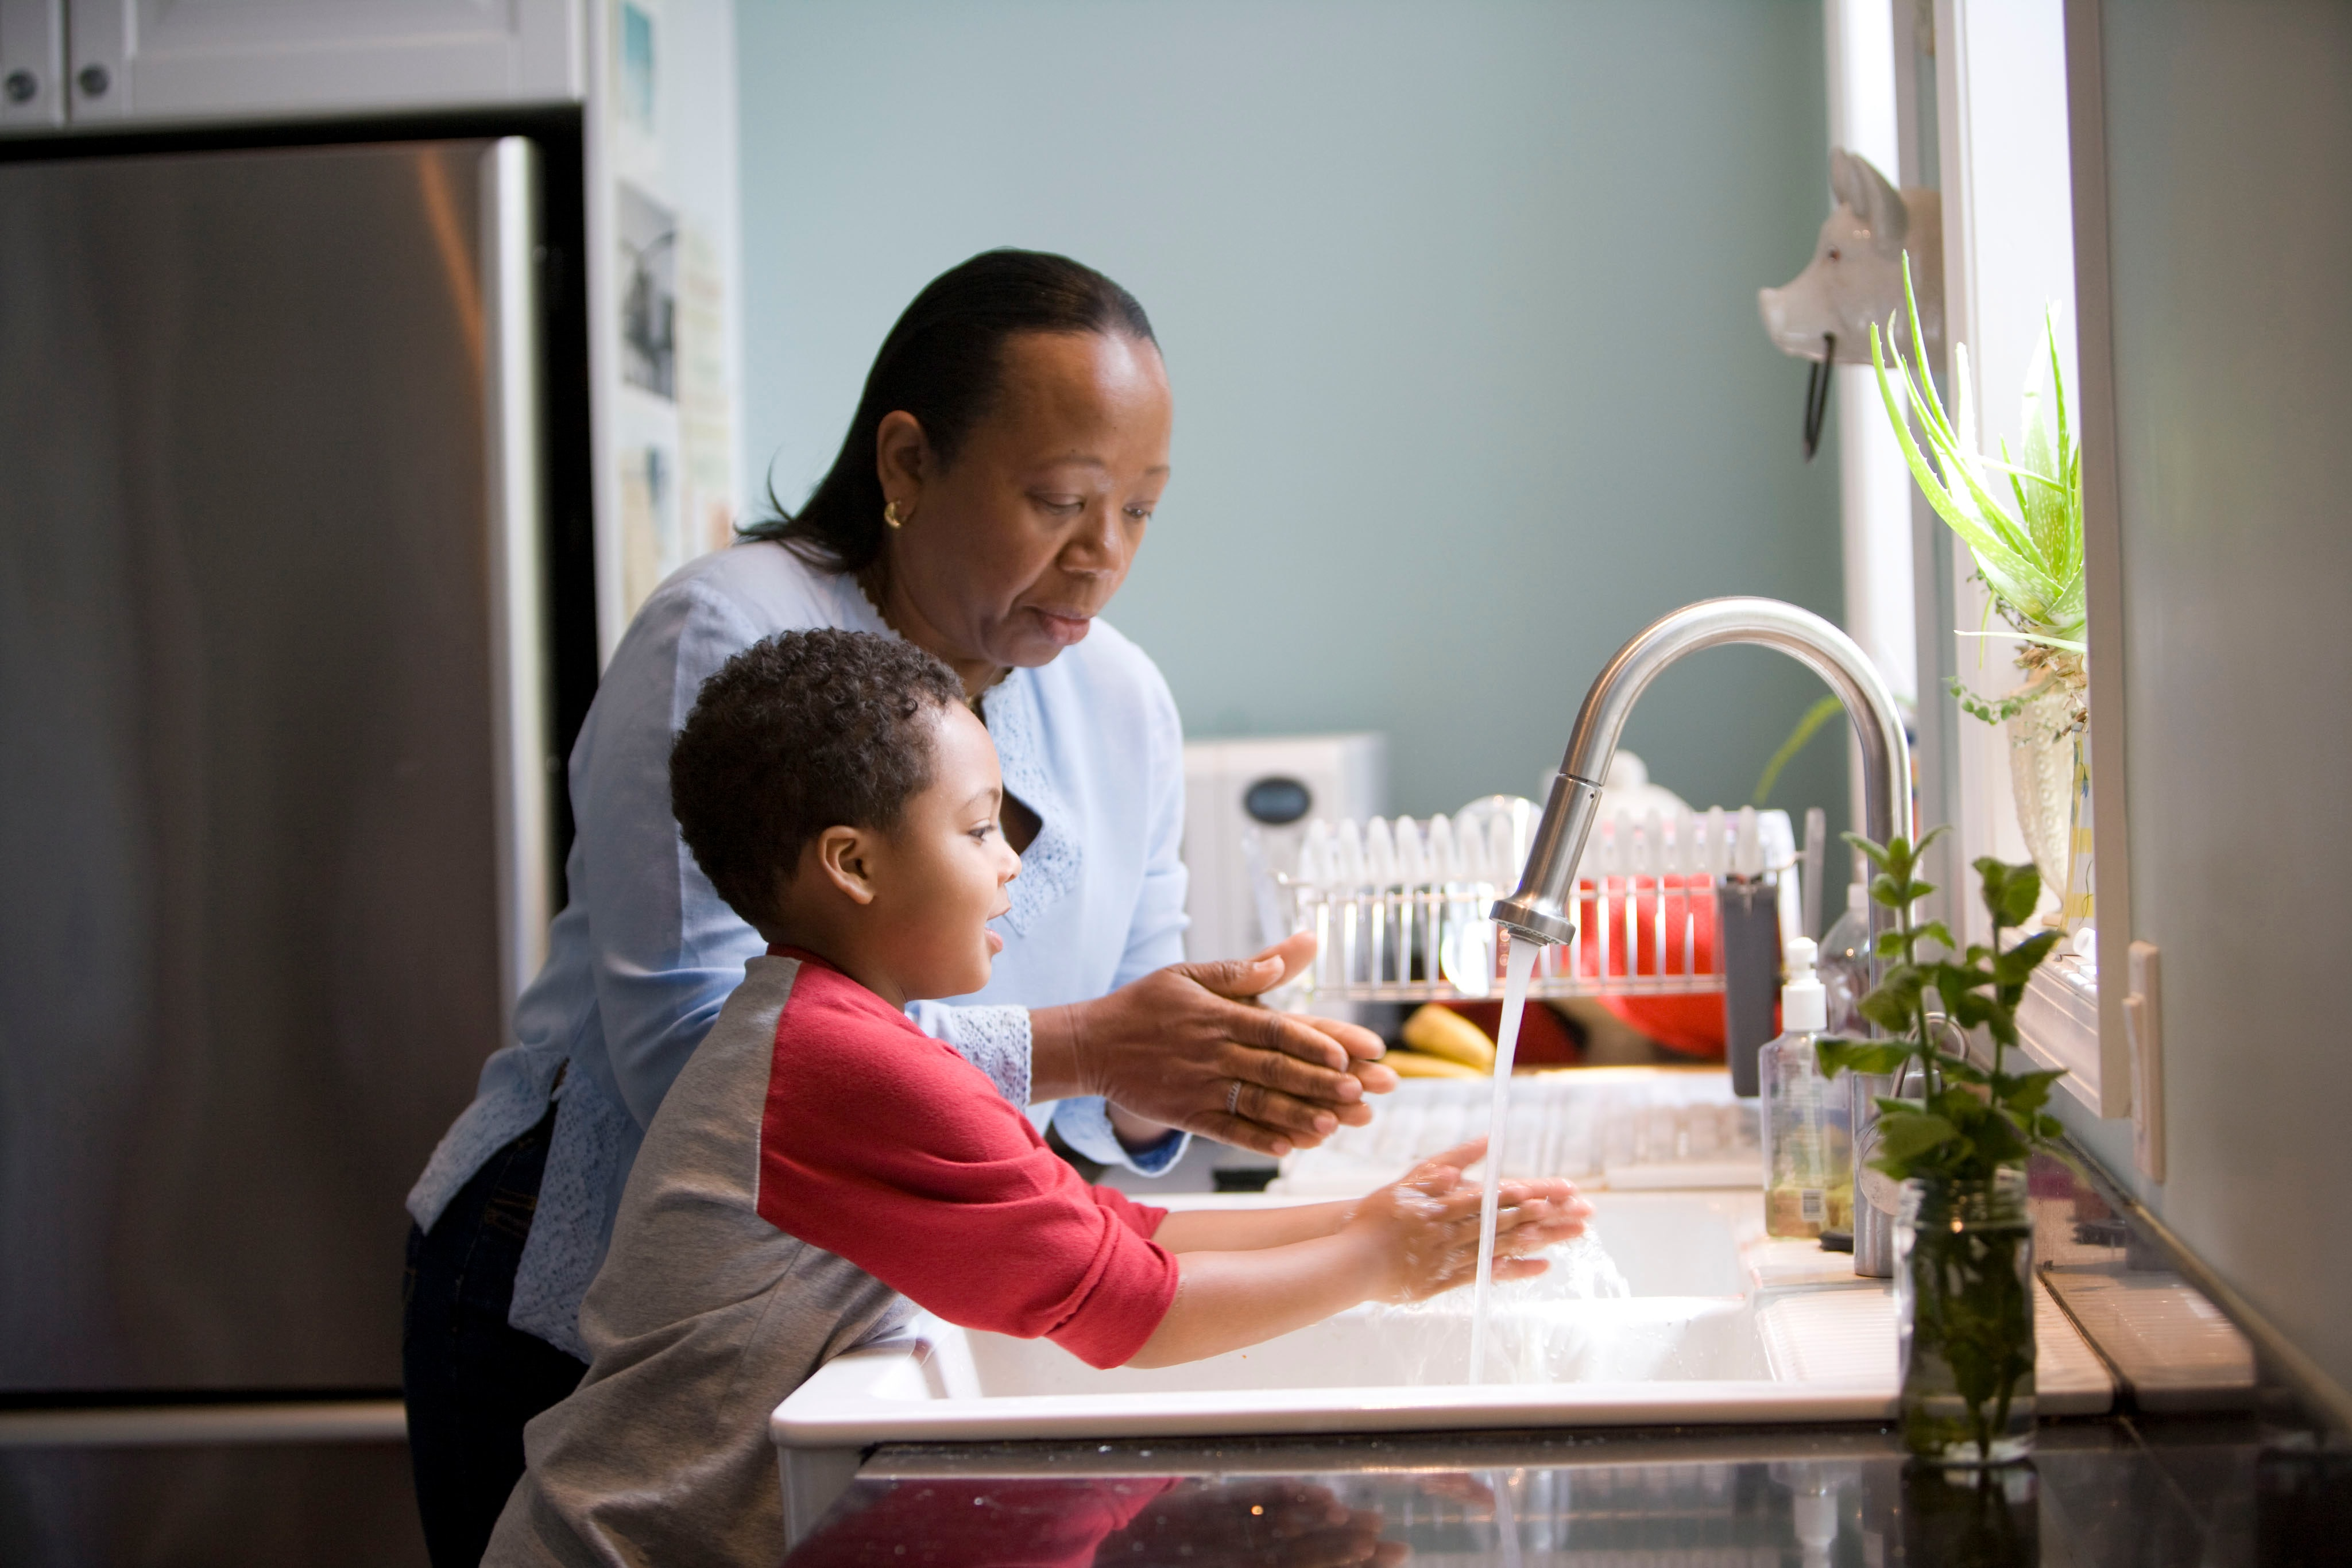 Black mother and son at a sink | Photo by CDC on Unsplash